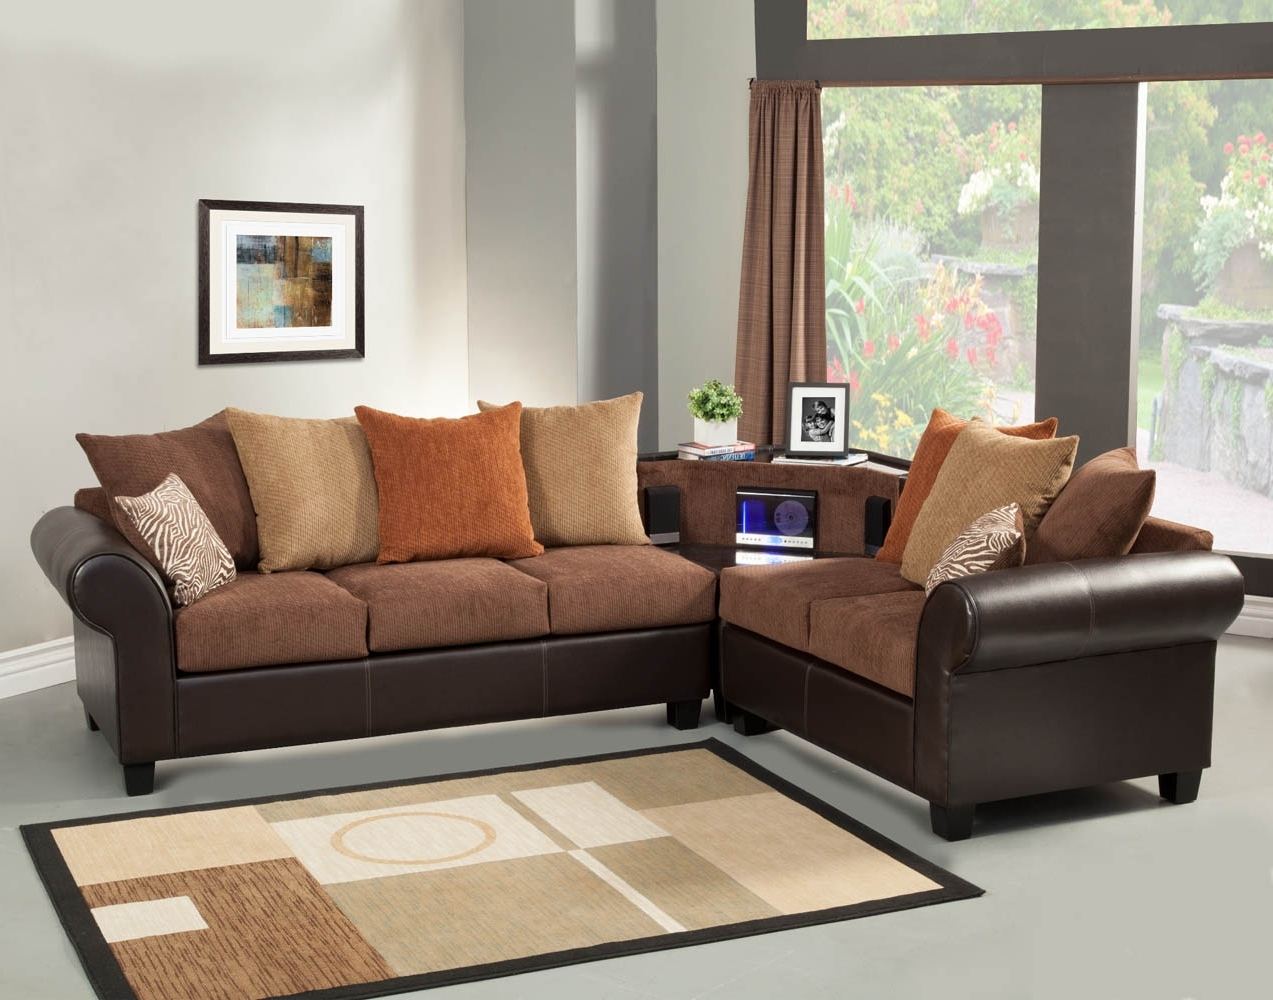 2017 Brown Sectional Sofa Set With Aux, Cd, And Am/fm Stereo With Regard To Orange Sectional Sofas (View 10 of 15)